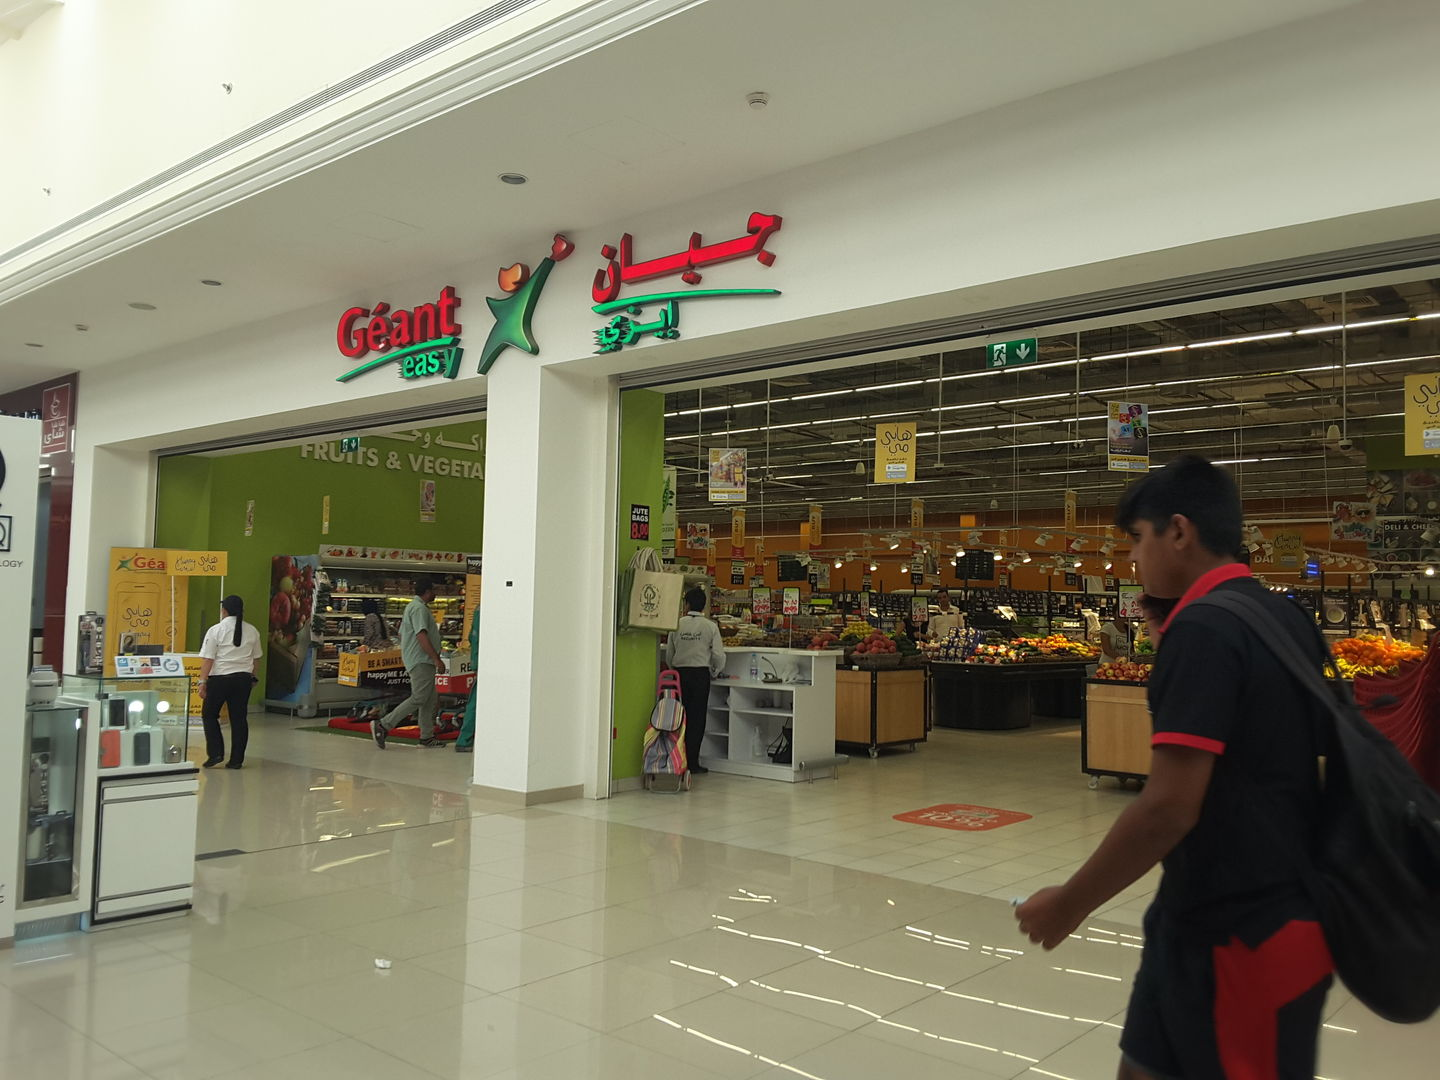 HiDubai-business-geant-food-beverage-supermarkets-hypermarkets-grocery-stores-discovery-gardens-jebel-ali-1-dubai-2